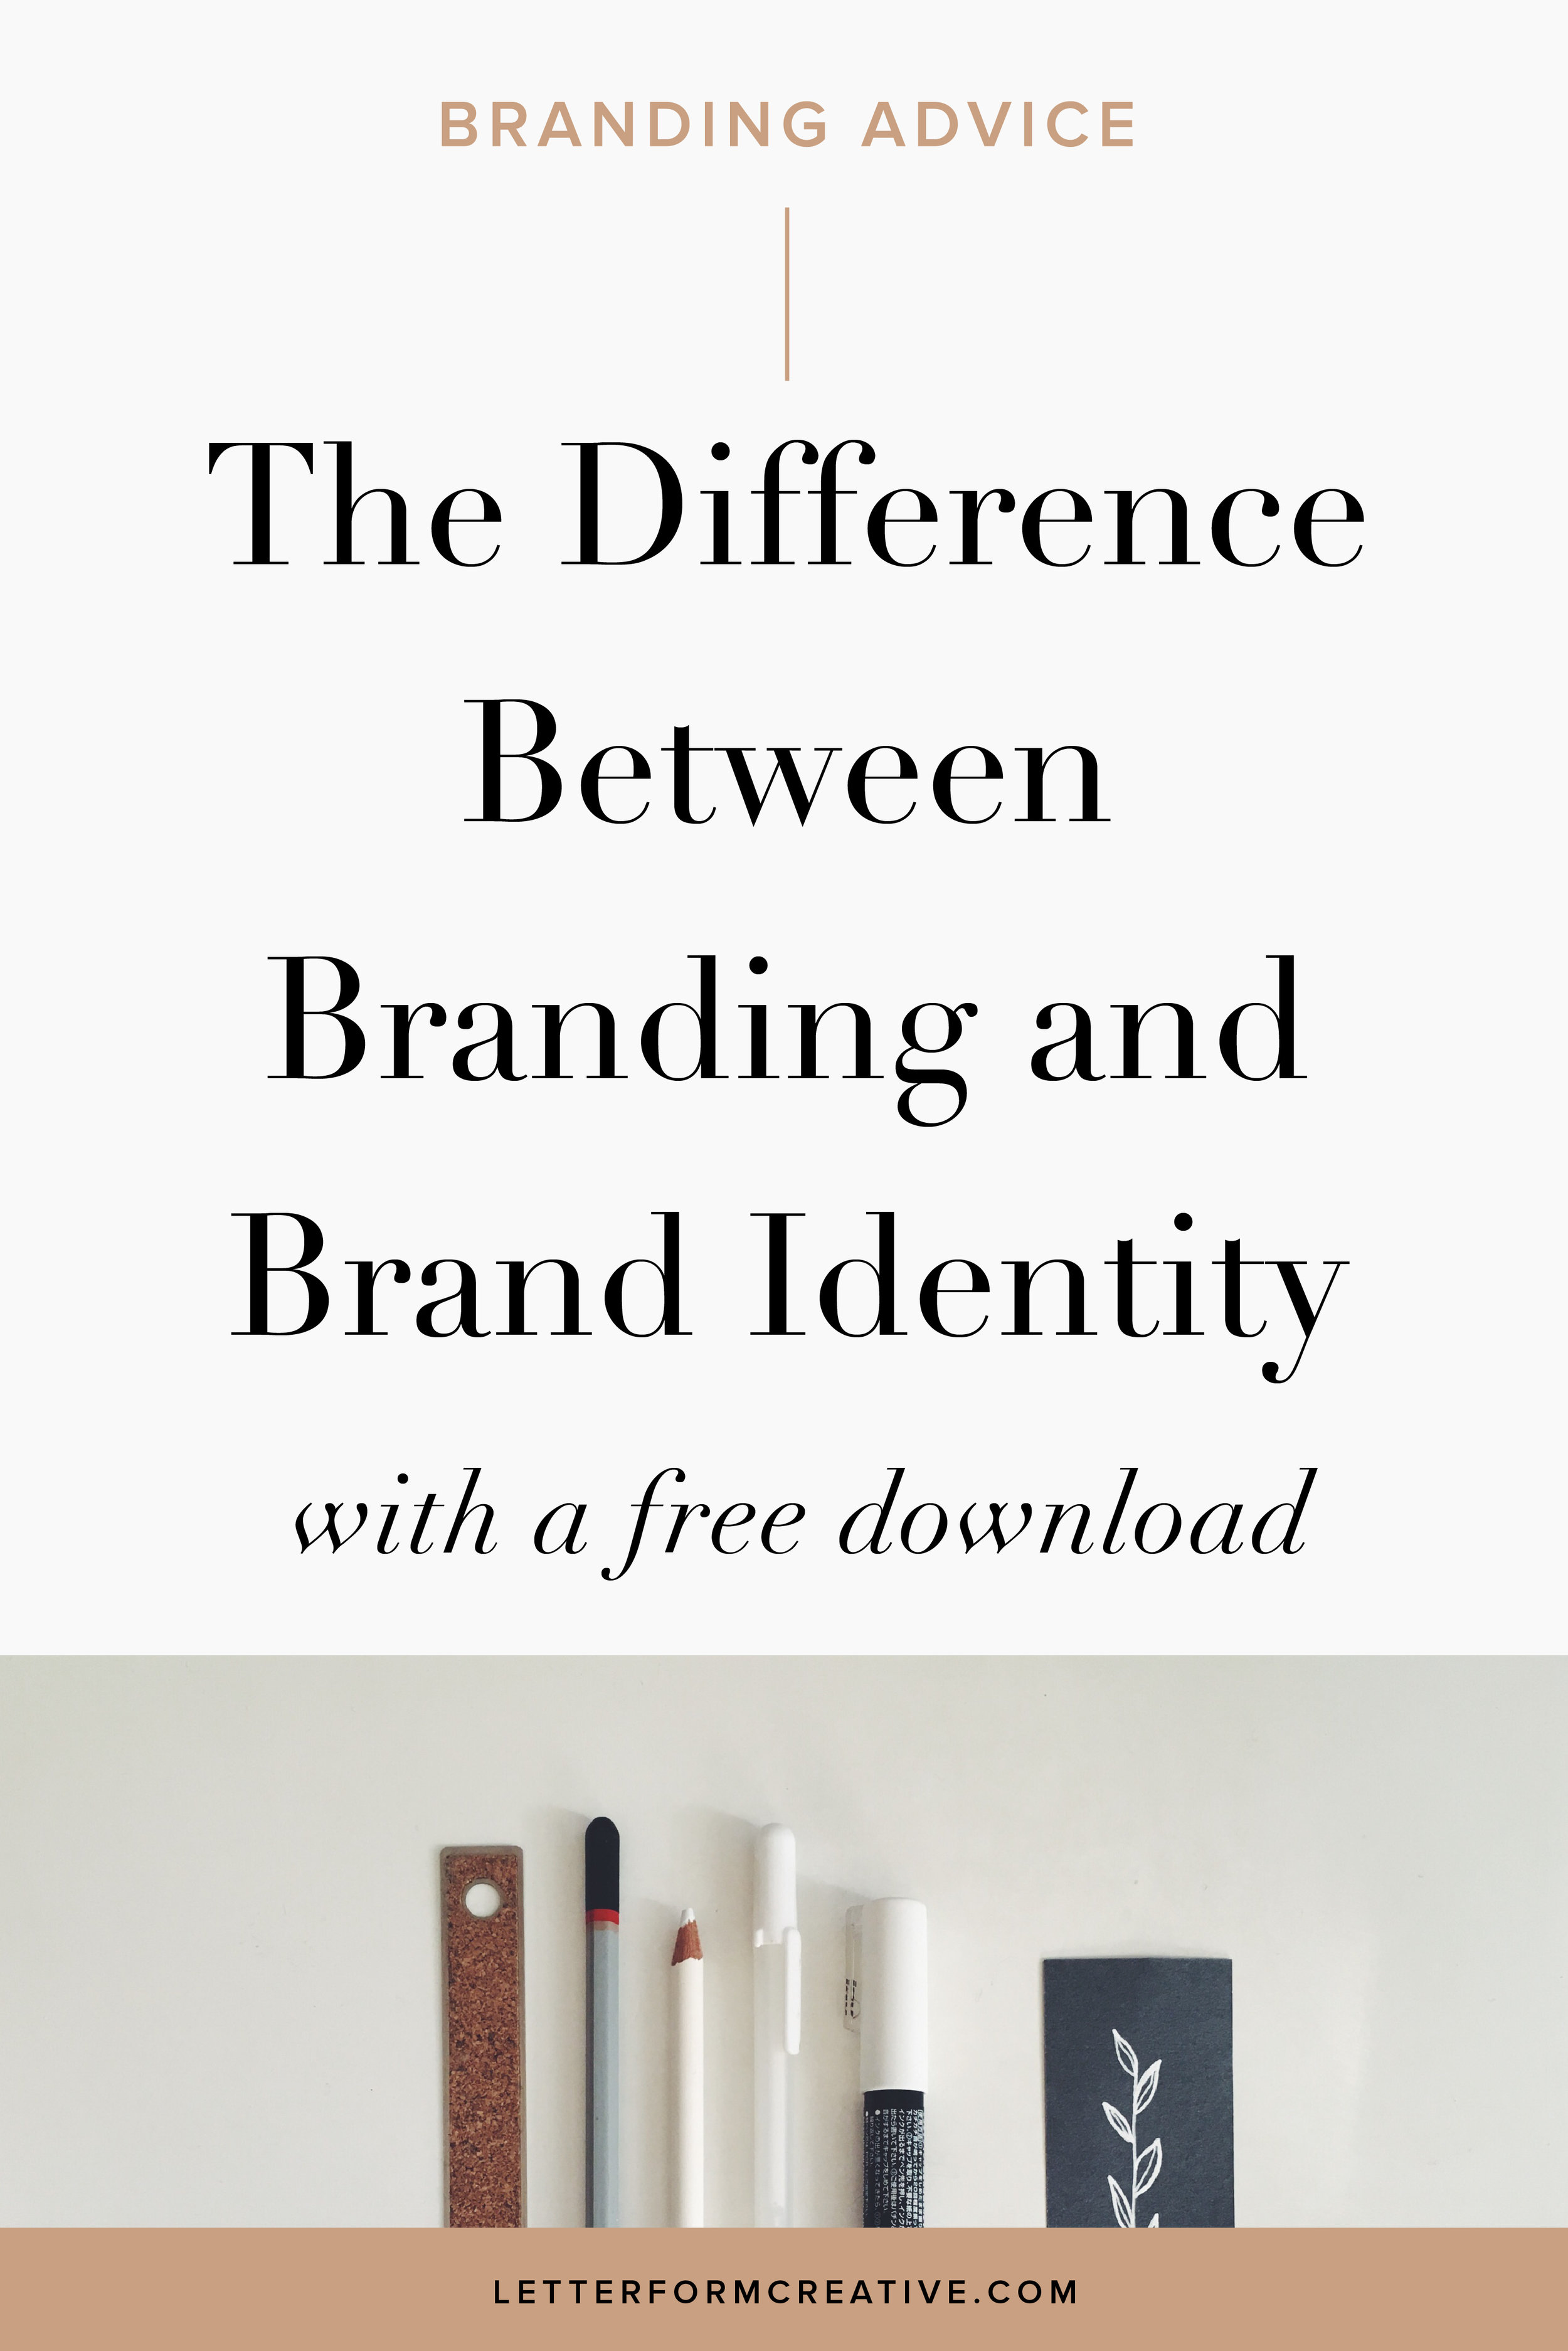 Hey, small Business owner, do you know the difference between your branding and your brand identity? Whether you are doing your branding yourself or you've hired a professional designer to design it, it's important to the success of your business that you understand the difference. It's simple, but it will have a profound impact on how you run your company.  If you think branding is just a logo then you absolutely must read this blog post! It will give you fresh insight, ideas, and creative inspiration with which to approach your brand strategy and create your personal brand guidelines.